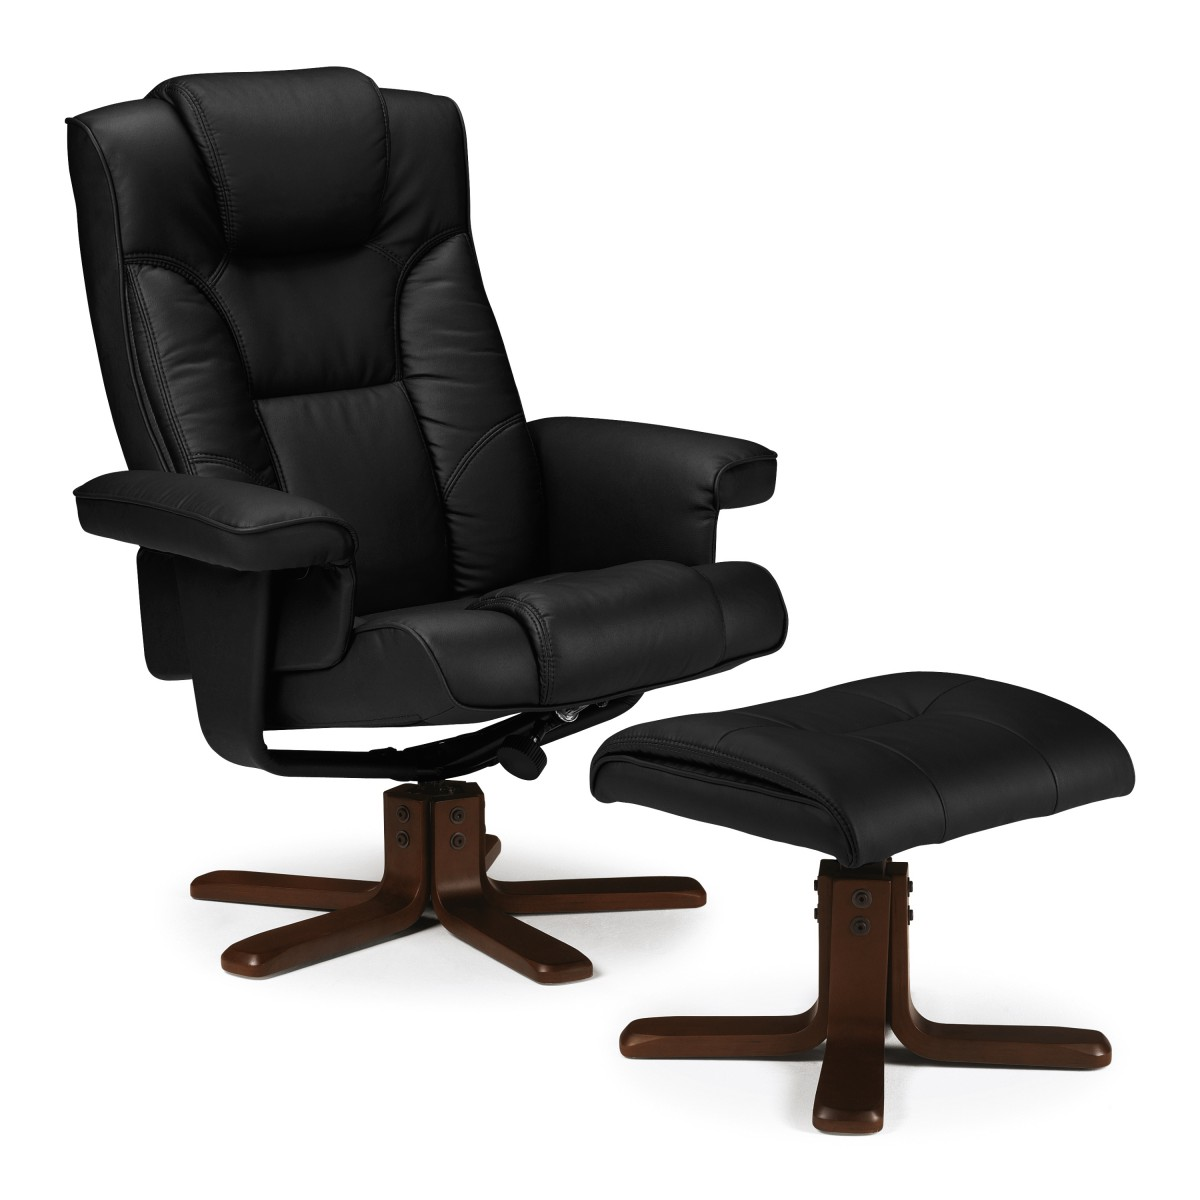 Photo of Julian bowen malmo black leather recliner chair and stool